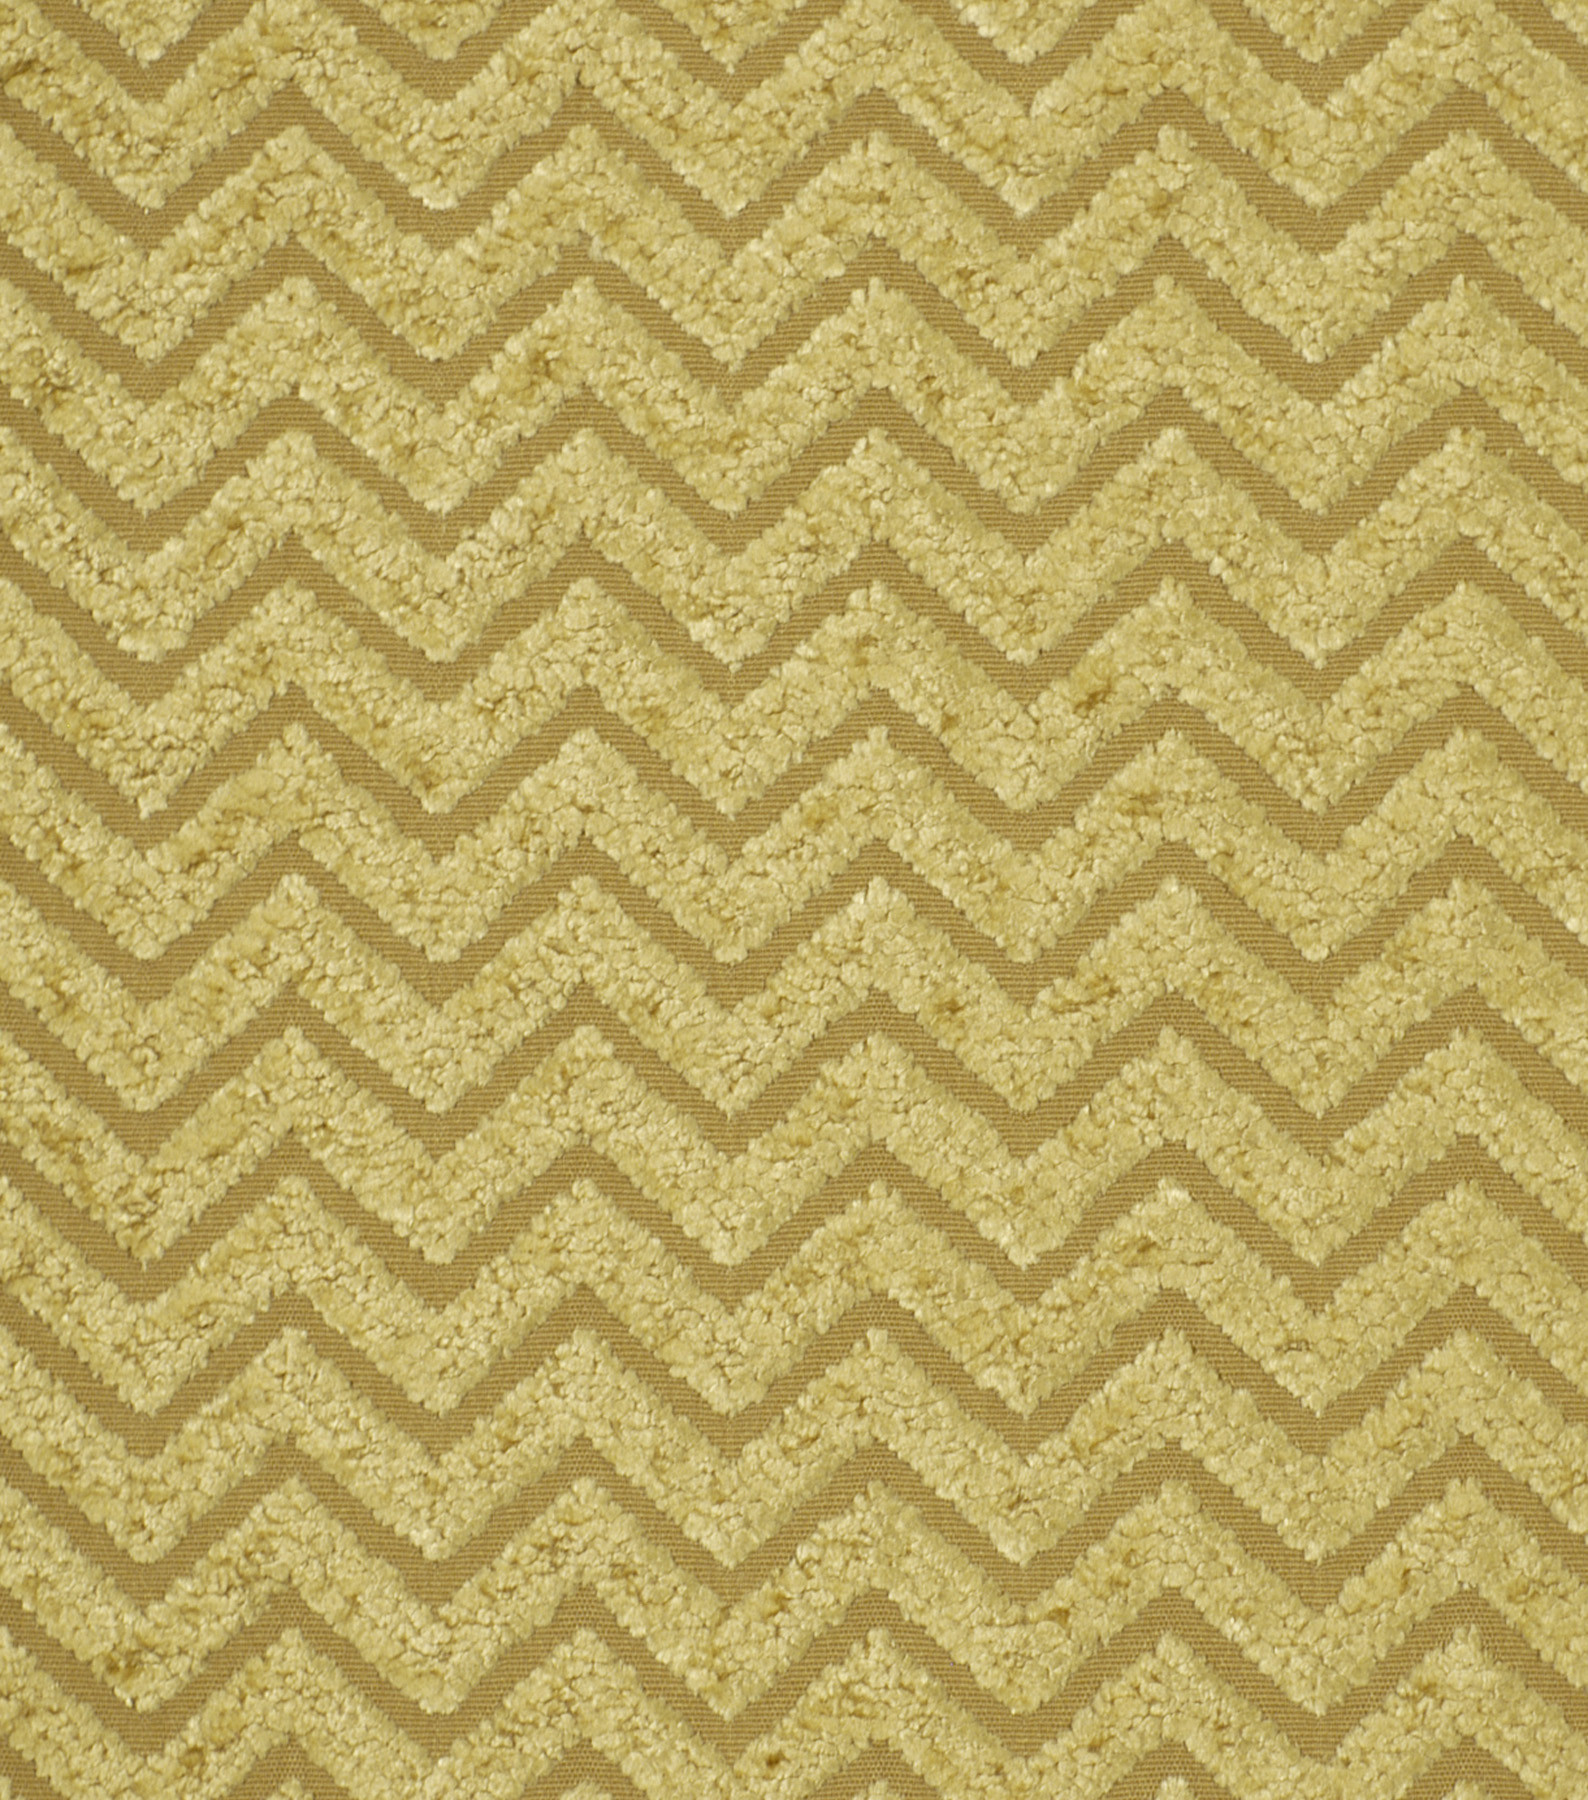 Home Decor 8\u0022x8\u0022 Fabric Swatch-Robert Allen Royal Chevron Champagne